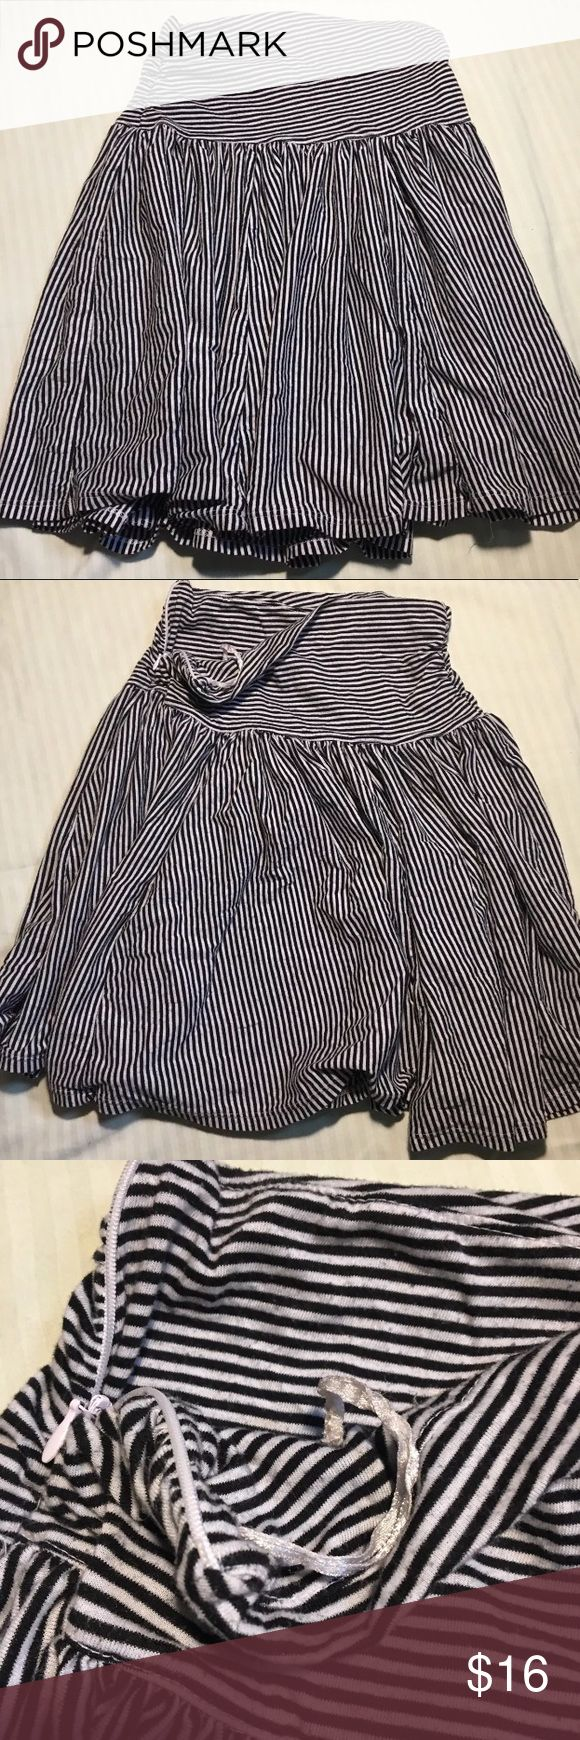 American Rag Skirt American Rag Cie Skirt  Size XS   Black And White Stripe  Condition:  Pre-Owned,No Holes, Rips Or Stains American Rag Skirts Midi